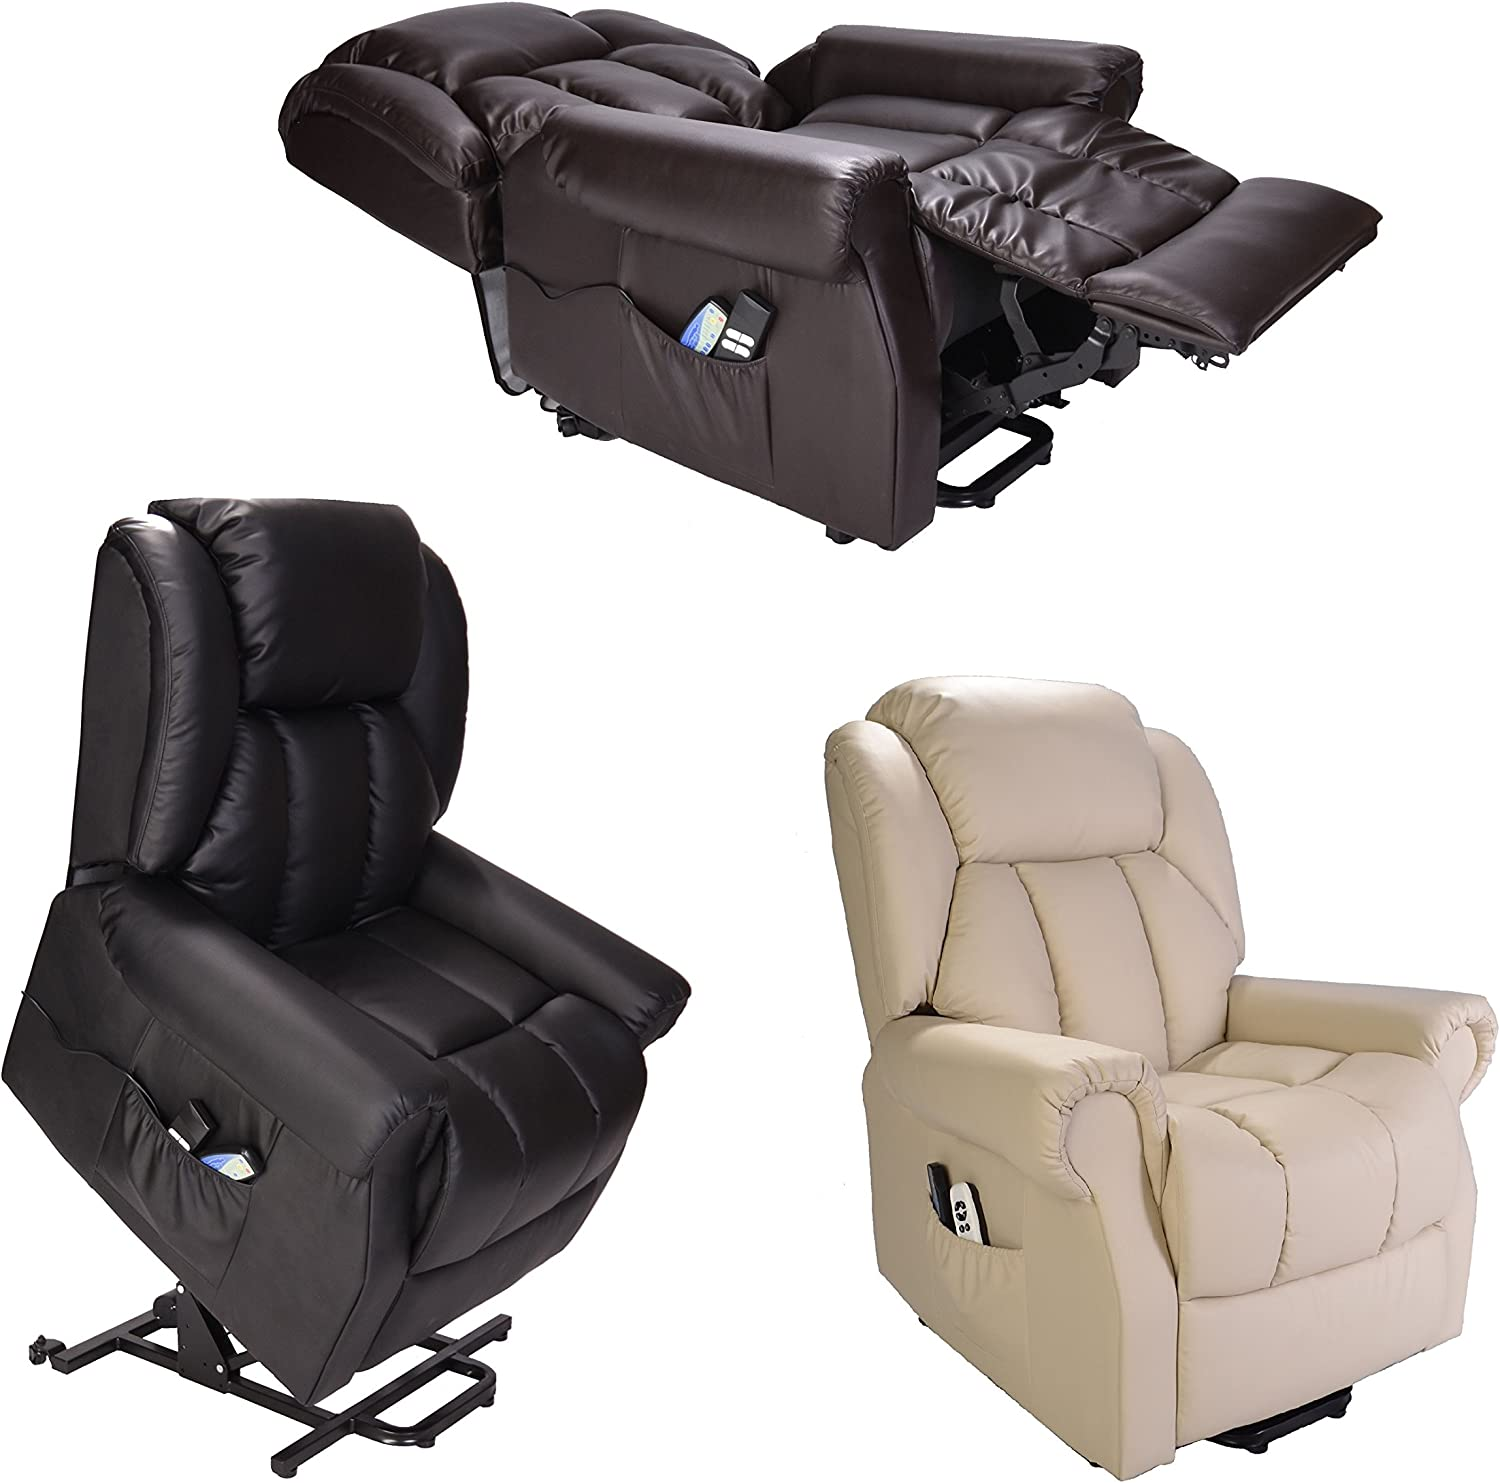 Hainworth Leather Dual Motor riser recliner chair with heat and massage brown